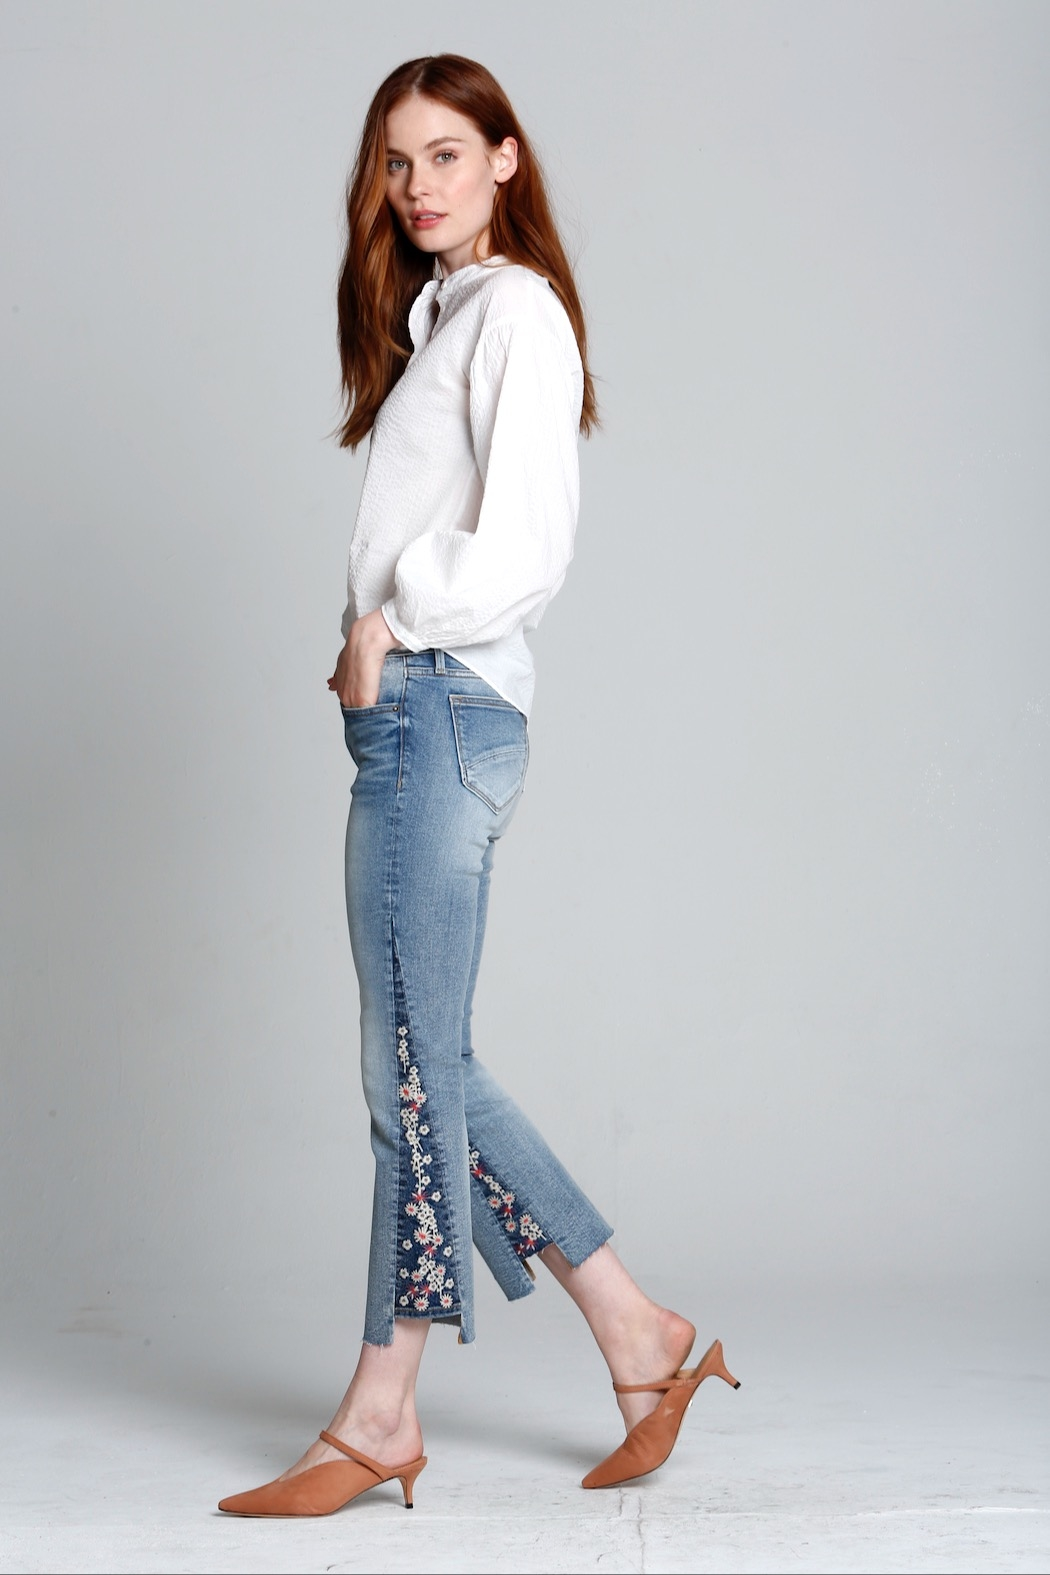 Driftwood Indie X Berry Jam Embroidered Jeans - Main Image